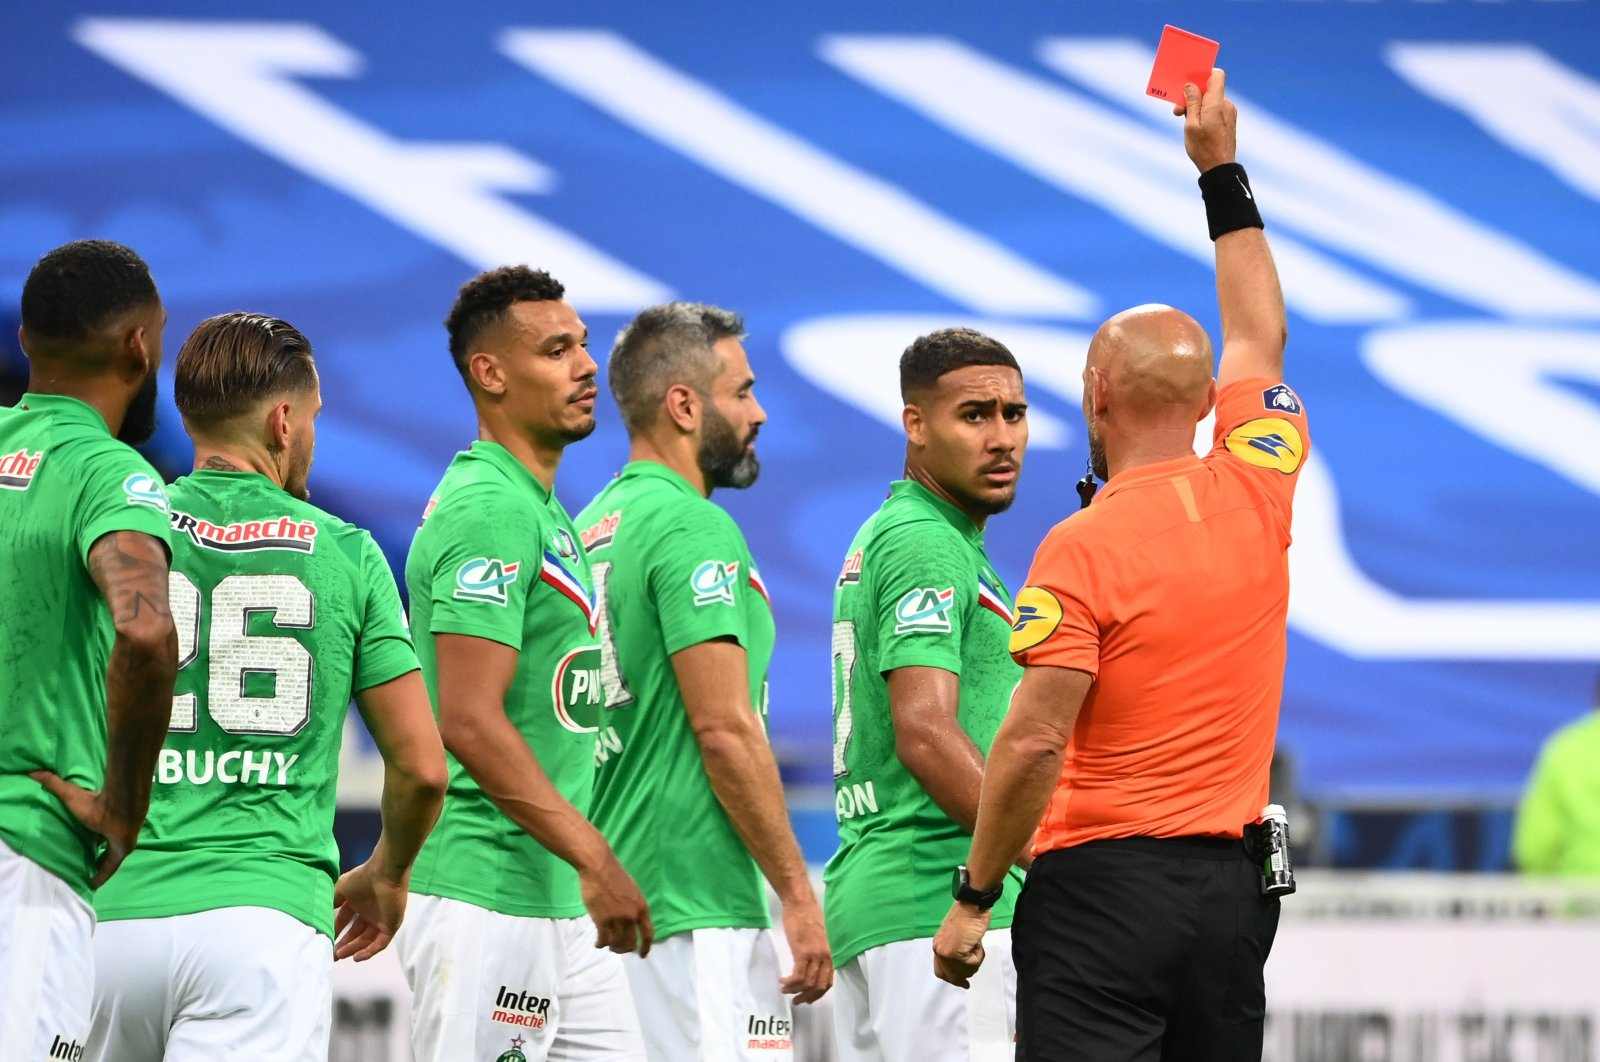 Saint-Etienne's French defender Loic Perrin (C) receives a red card from French referee Amaury Delerue (R) during the French Cup final football match between Paris Saint-Germain (PSG) and Saint-Etienne (ASSE) at the Stade de France in Saint-Denis, outside Paris, France on July 24, 2020. (AFP Photo)